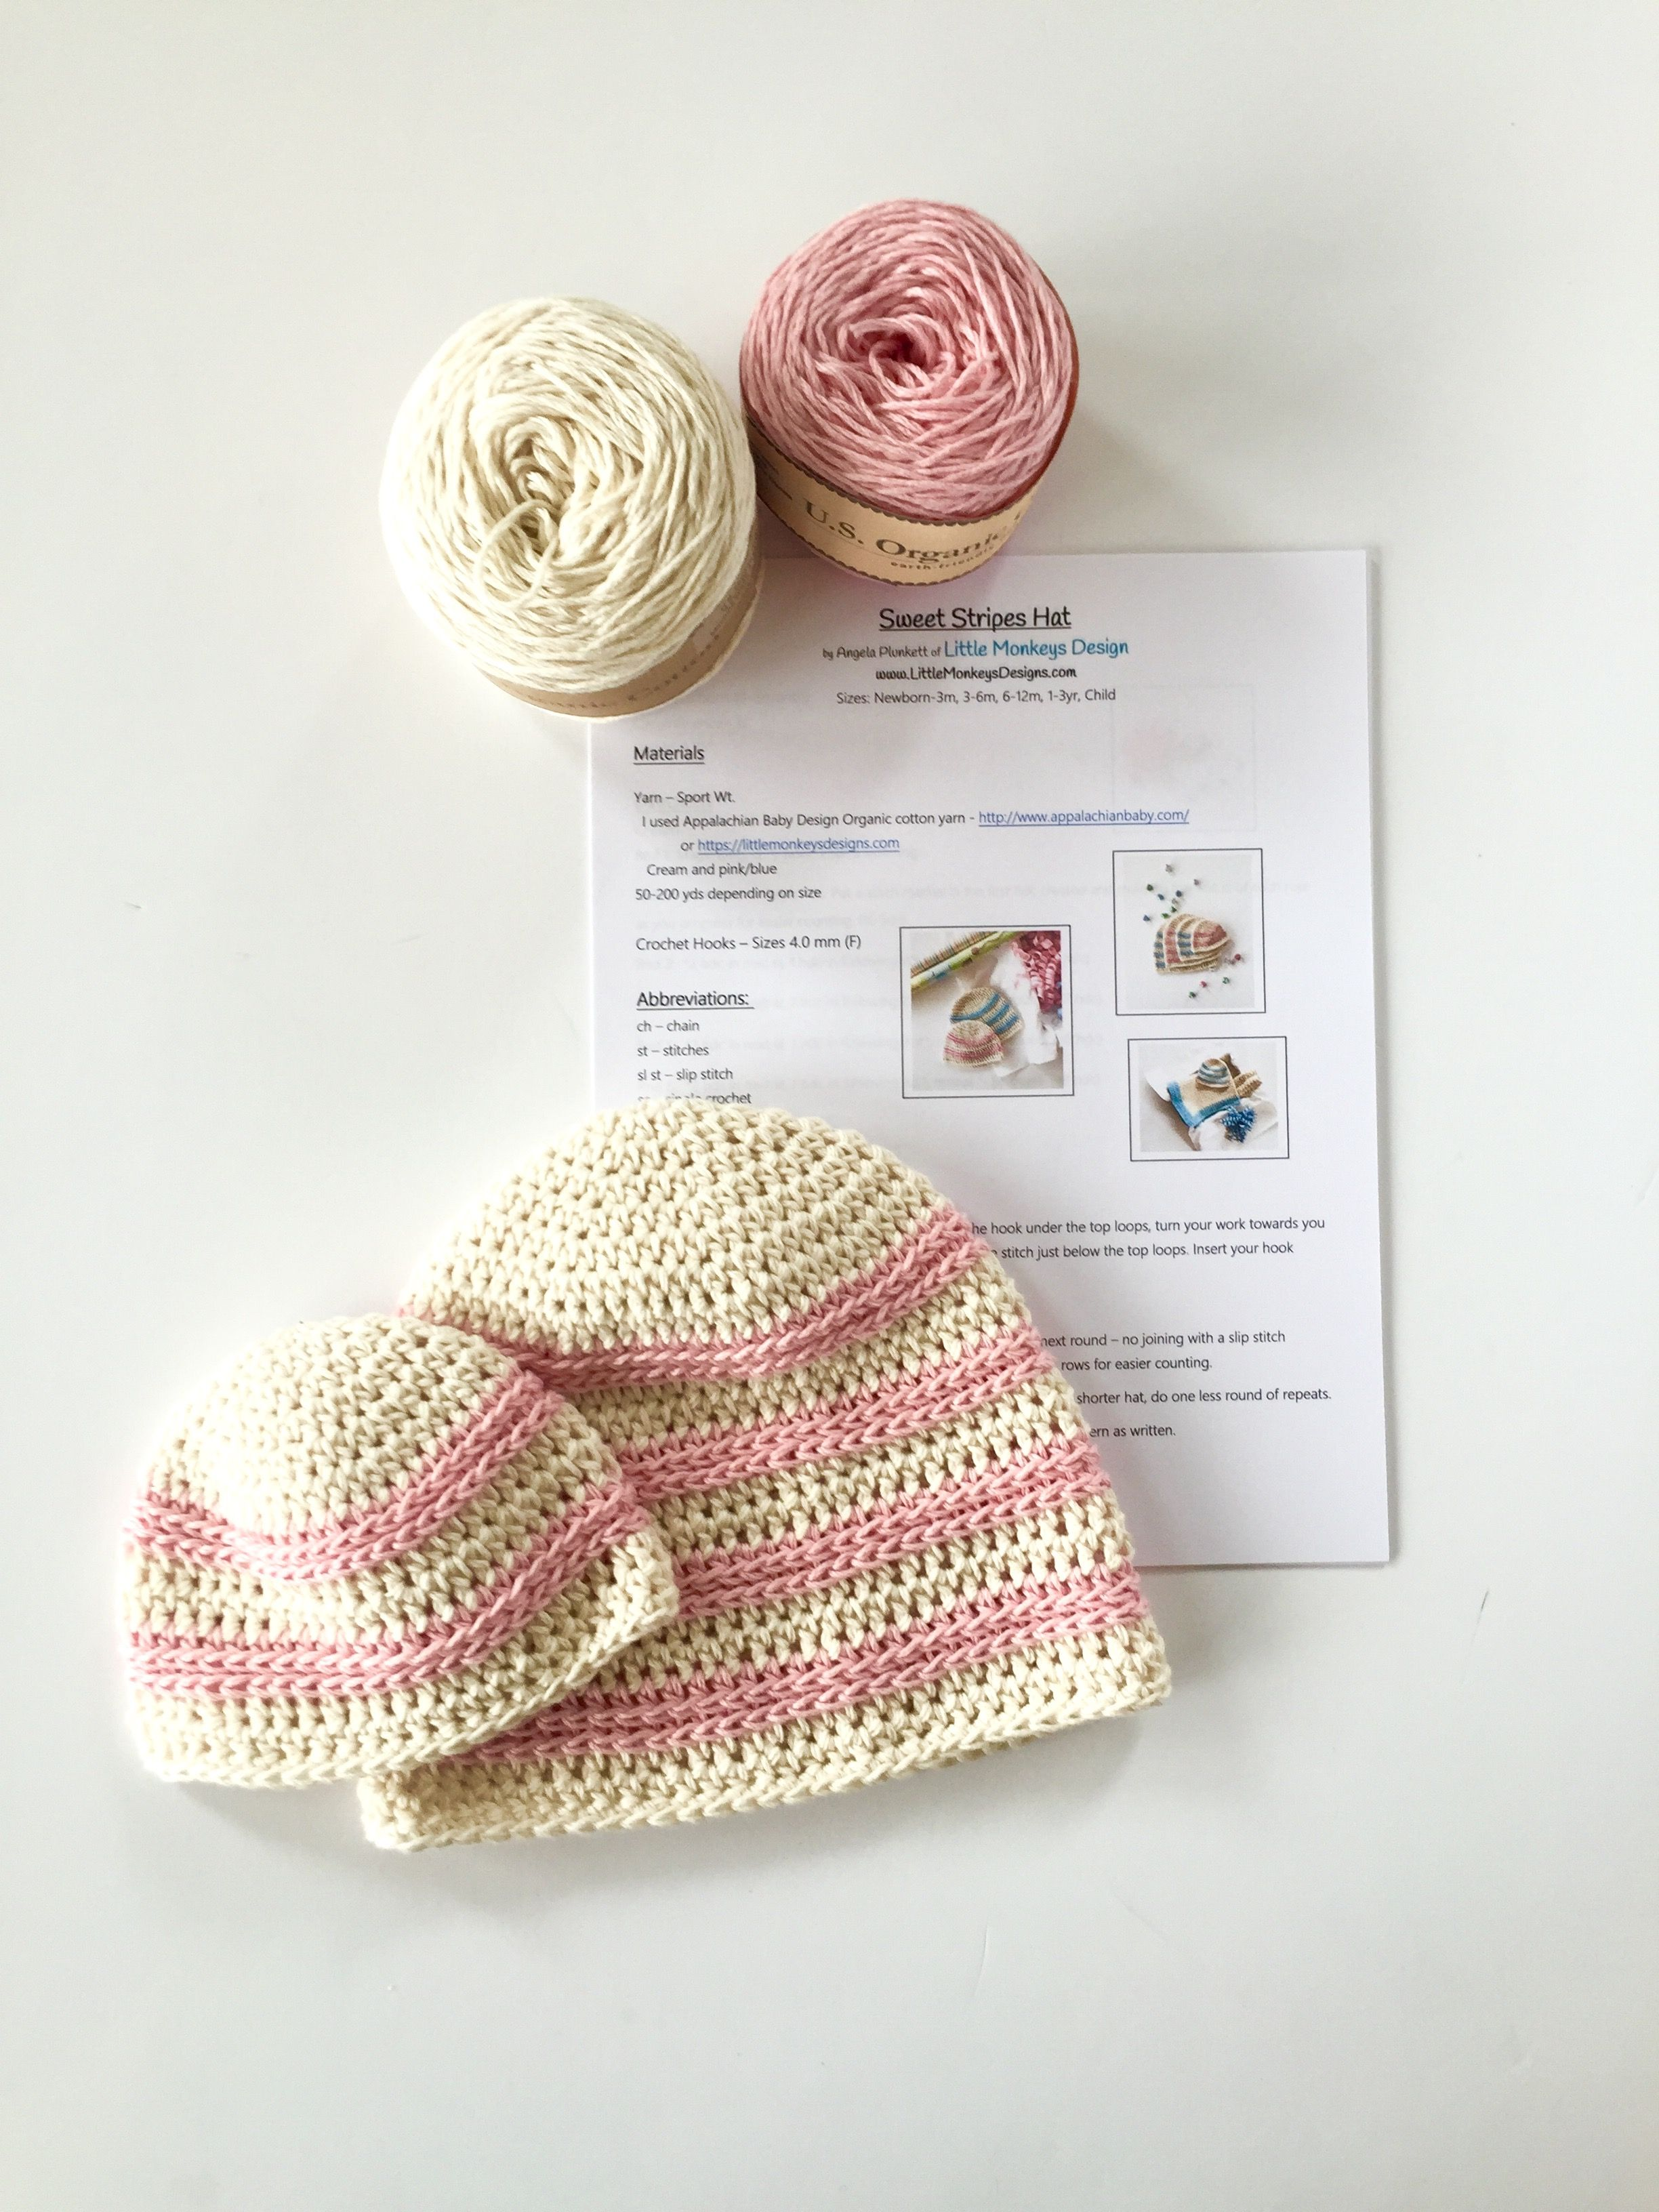 Sweet Stripes Organic Cotton Baby Hat Crochet Kit | Tejido y Accesorios